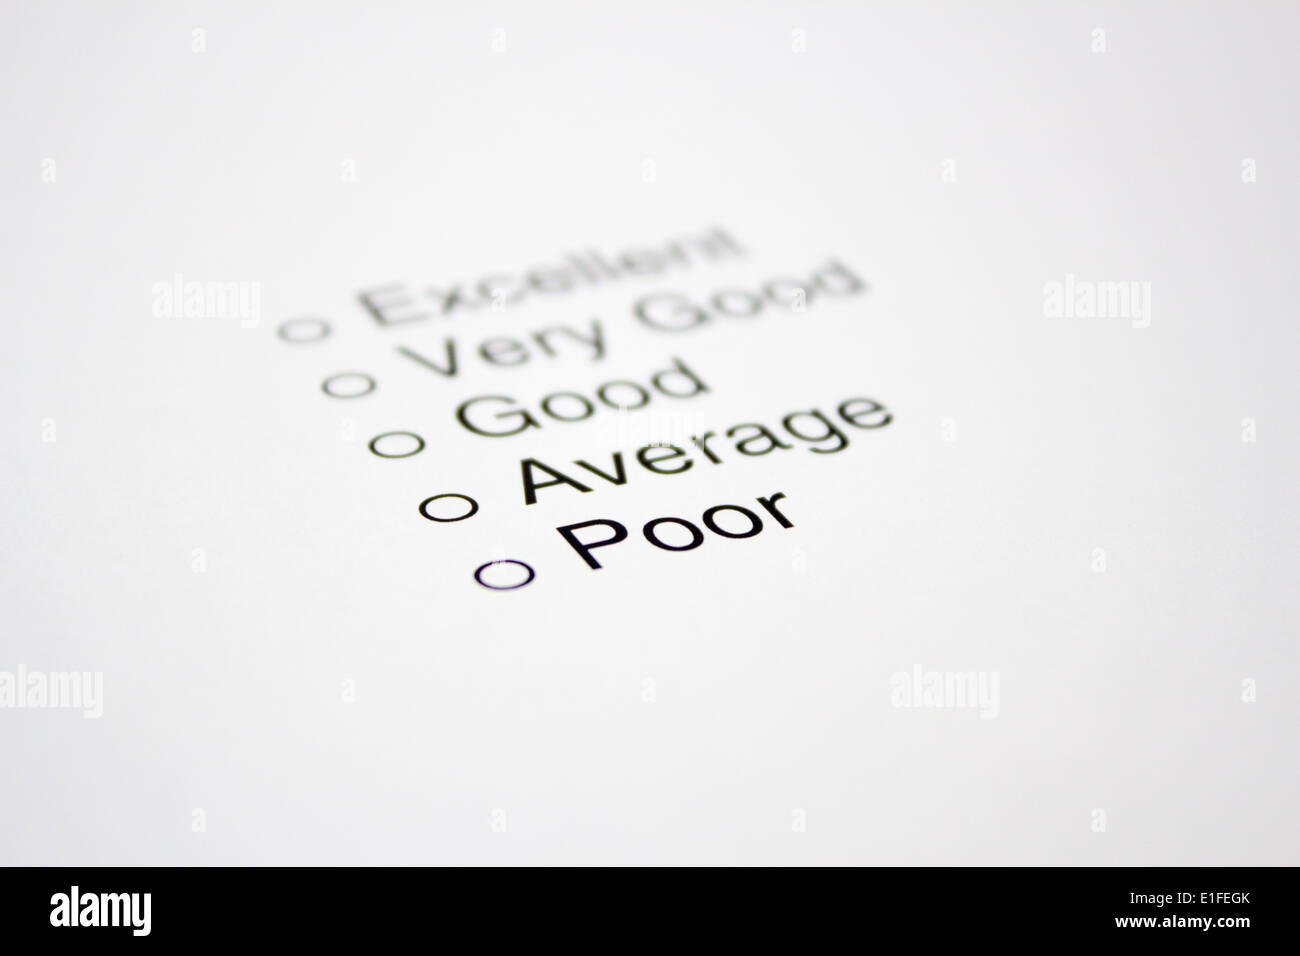 Feedback Questionnaire - Stock Image